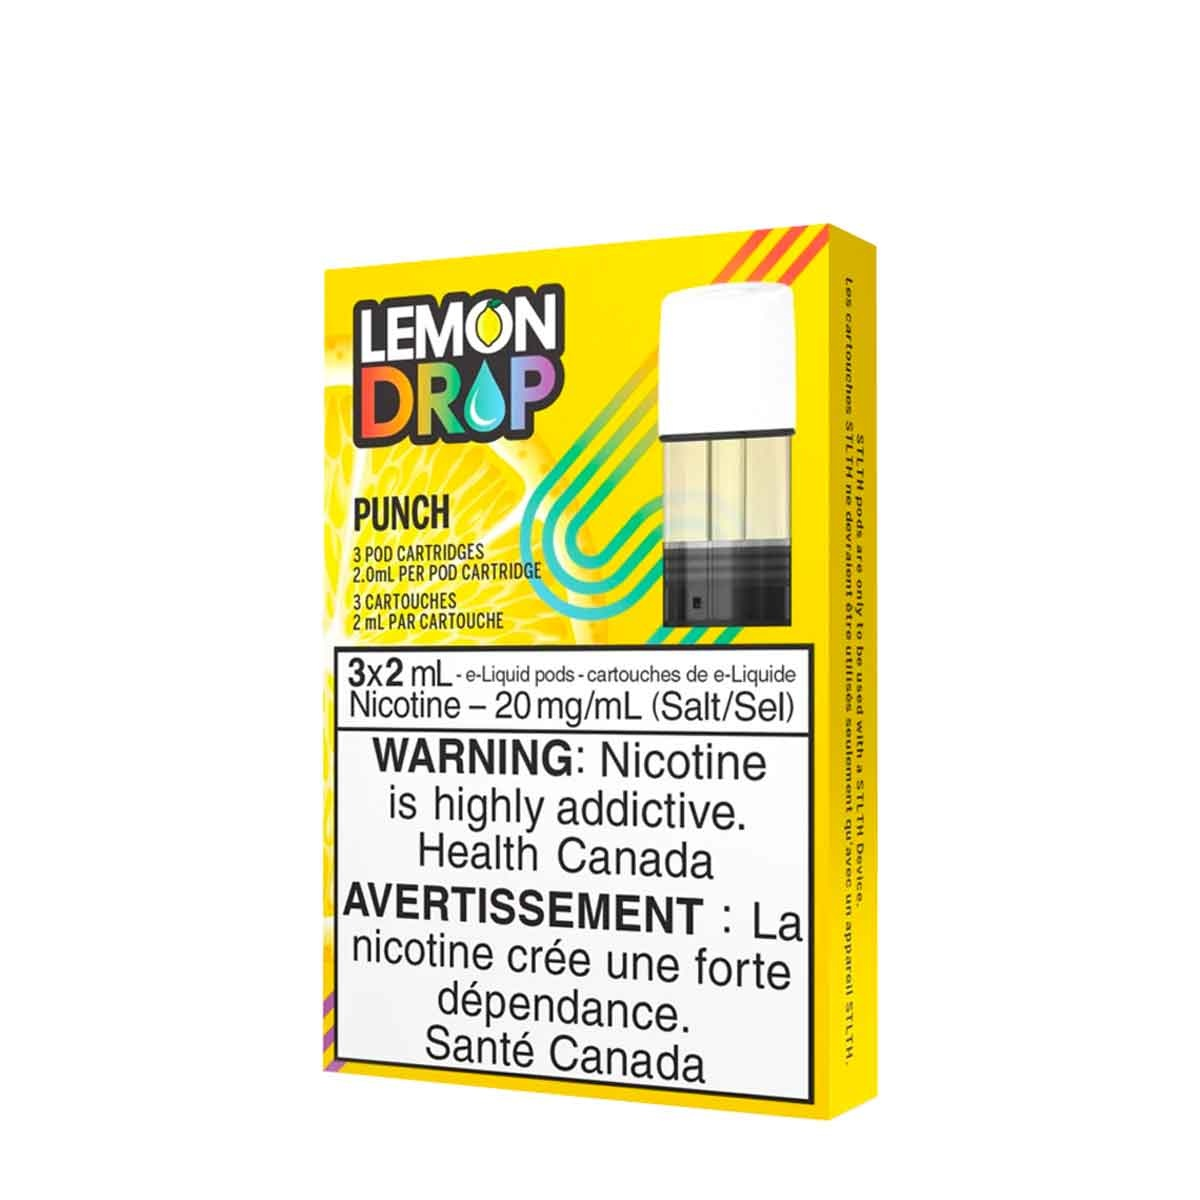 STLTH STLTH Lemon Drop Punch Pods (Pack of 3)